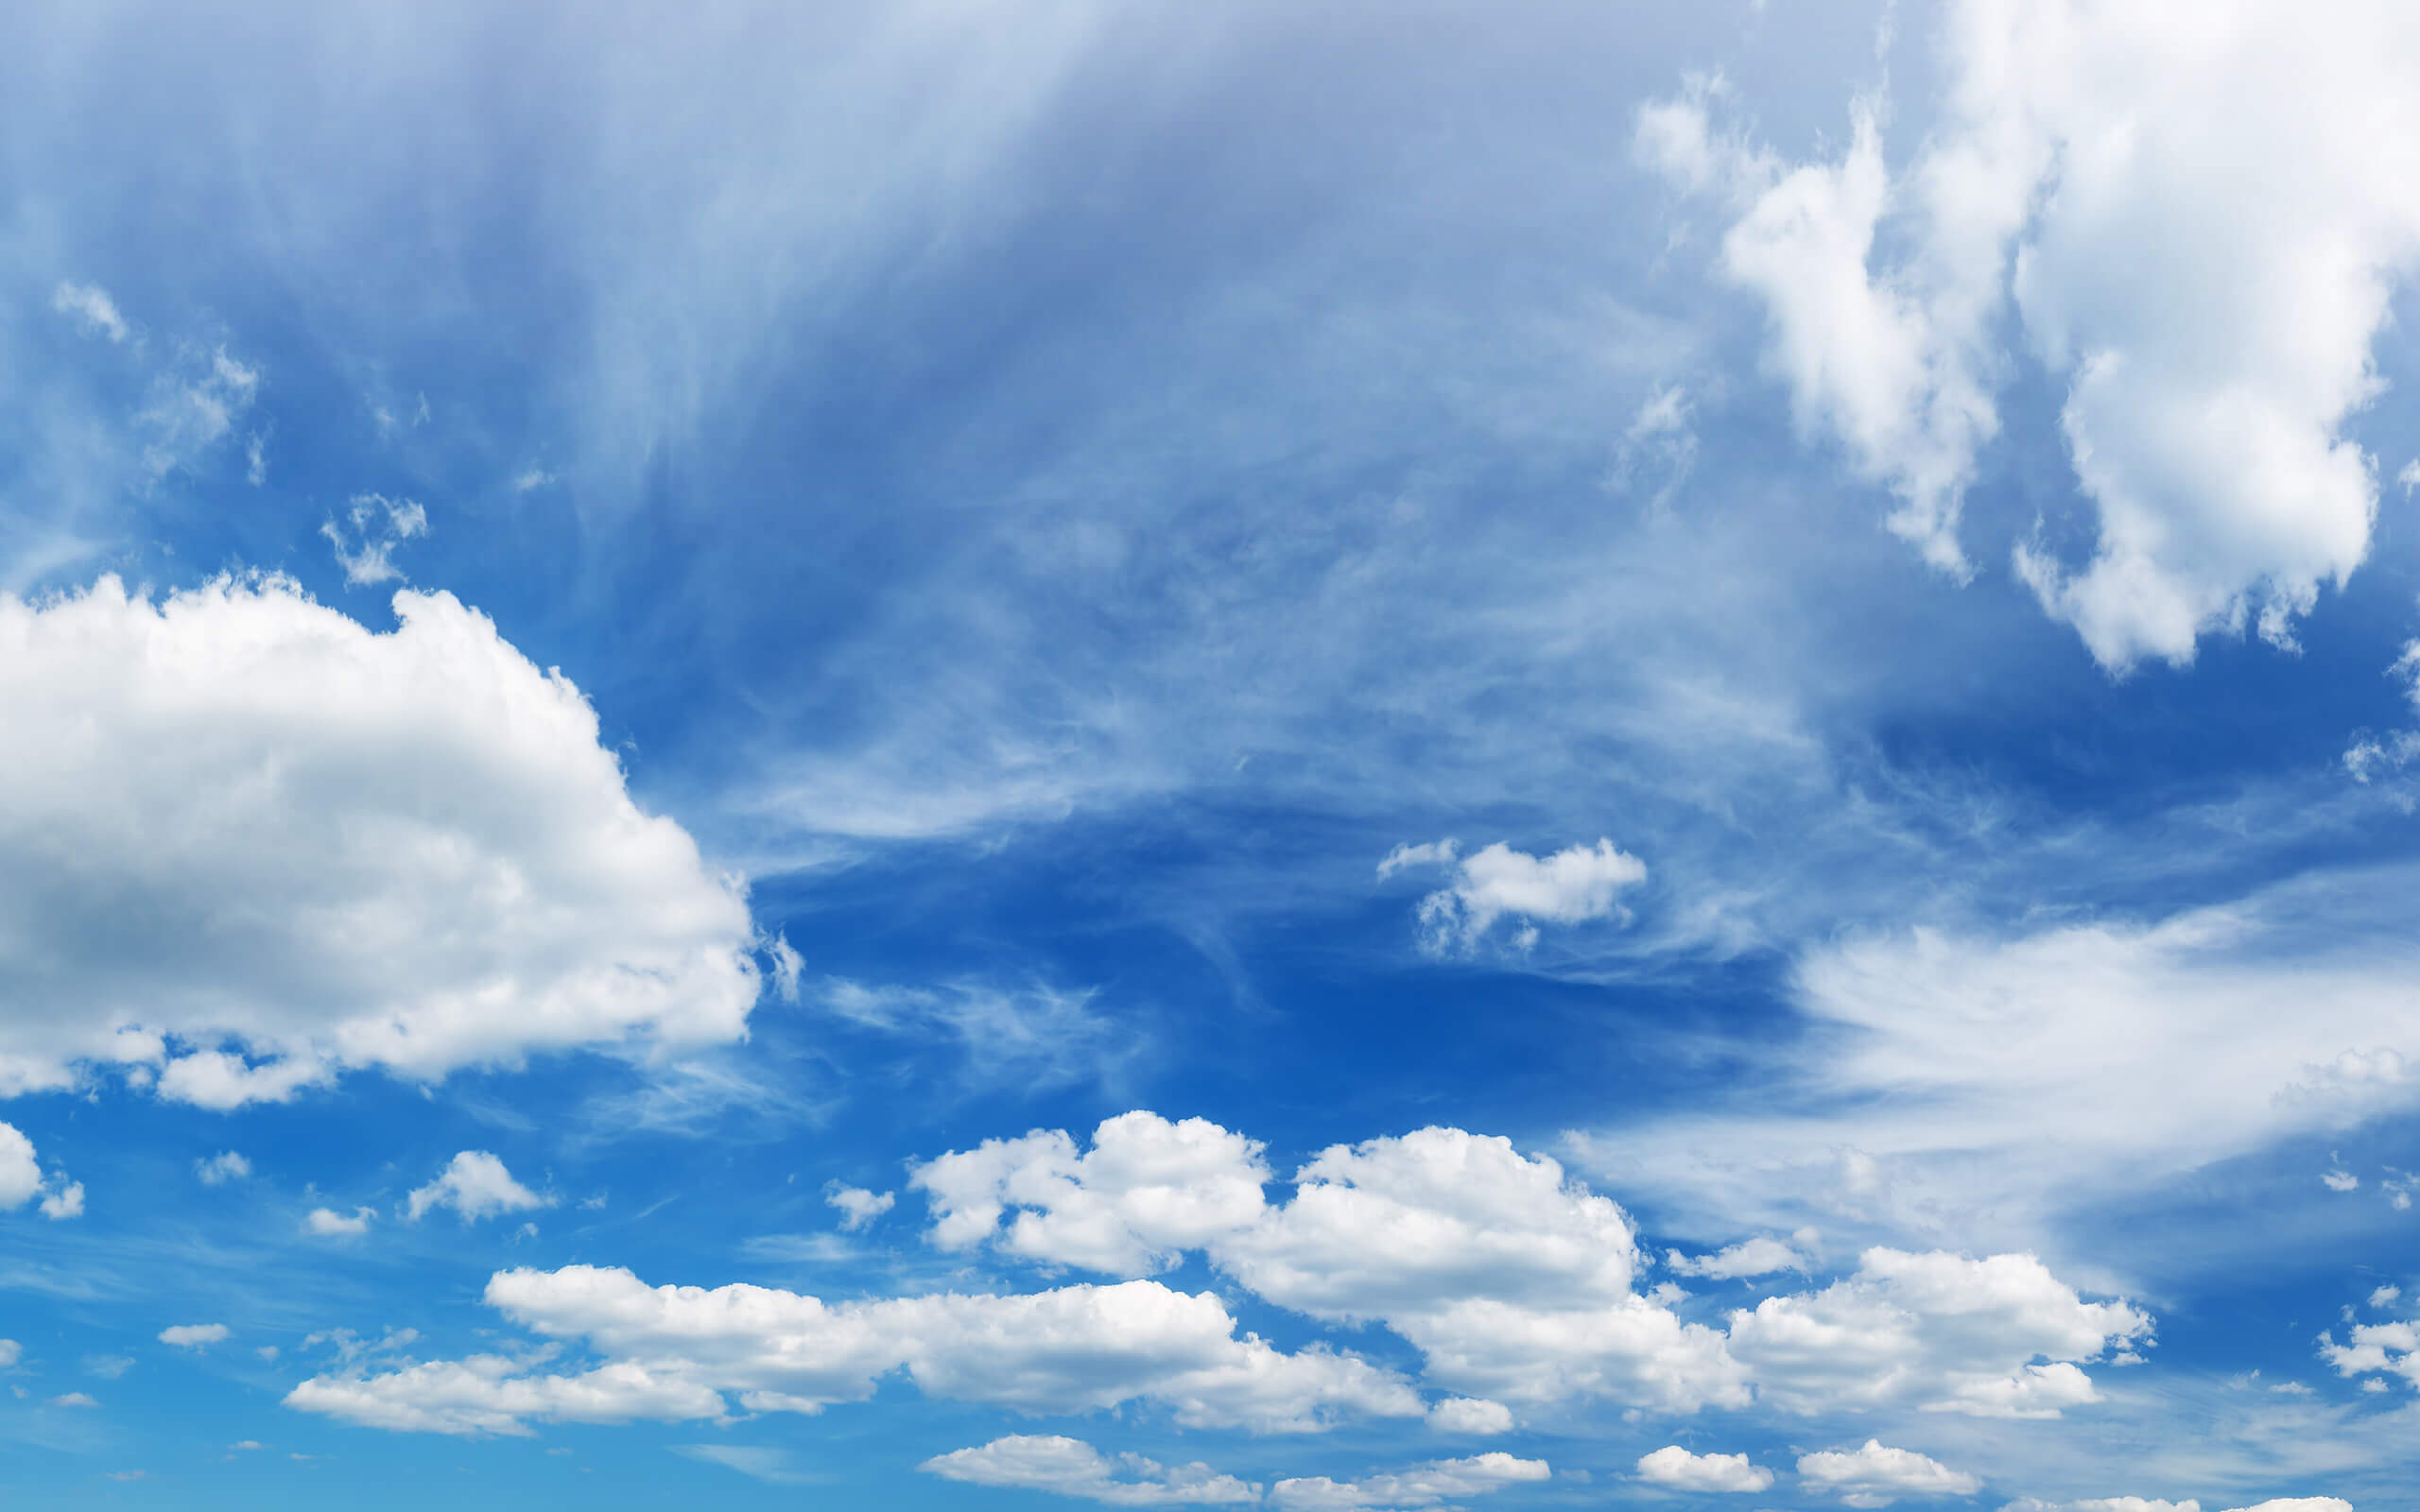 white clouds against a blue sky